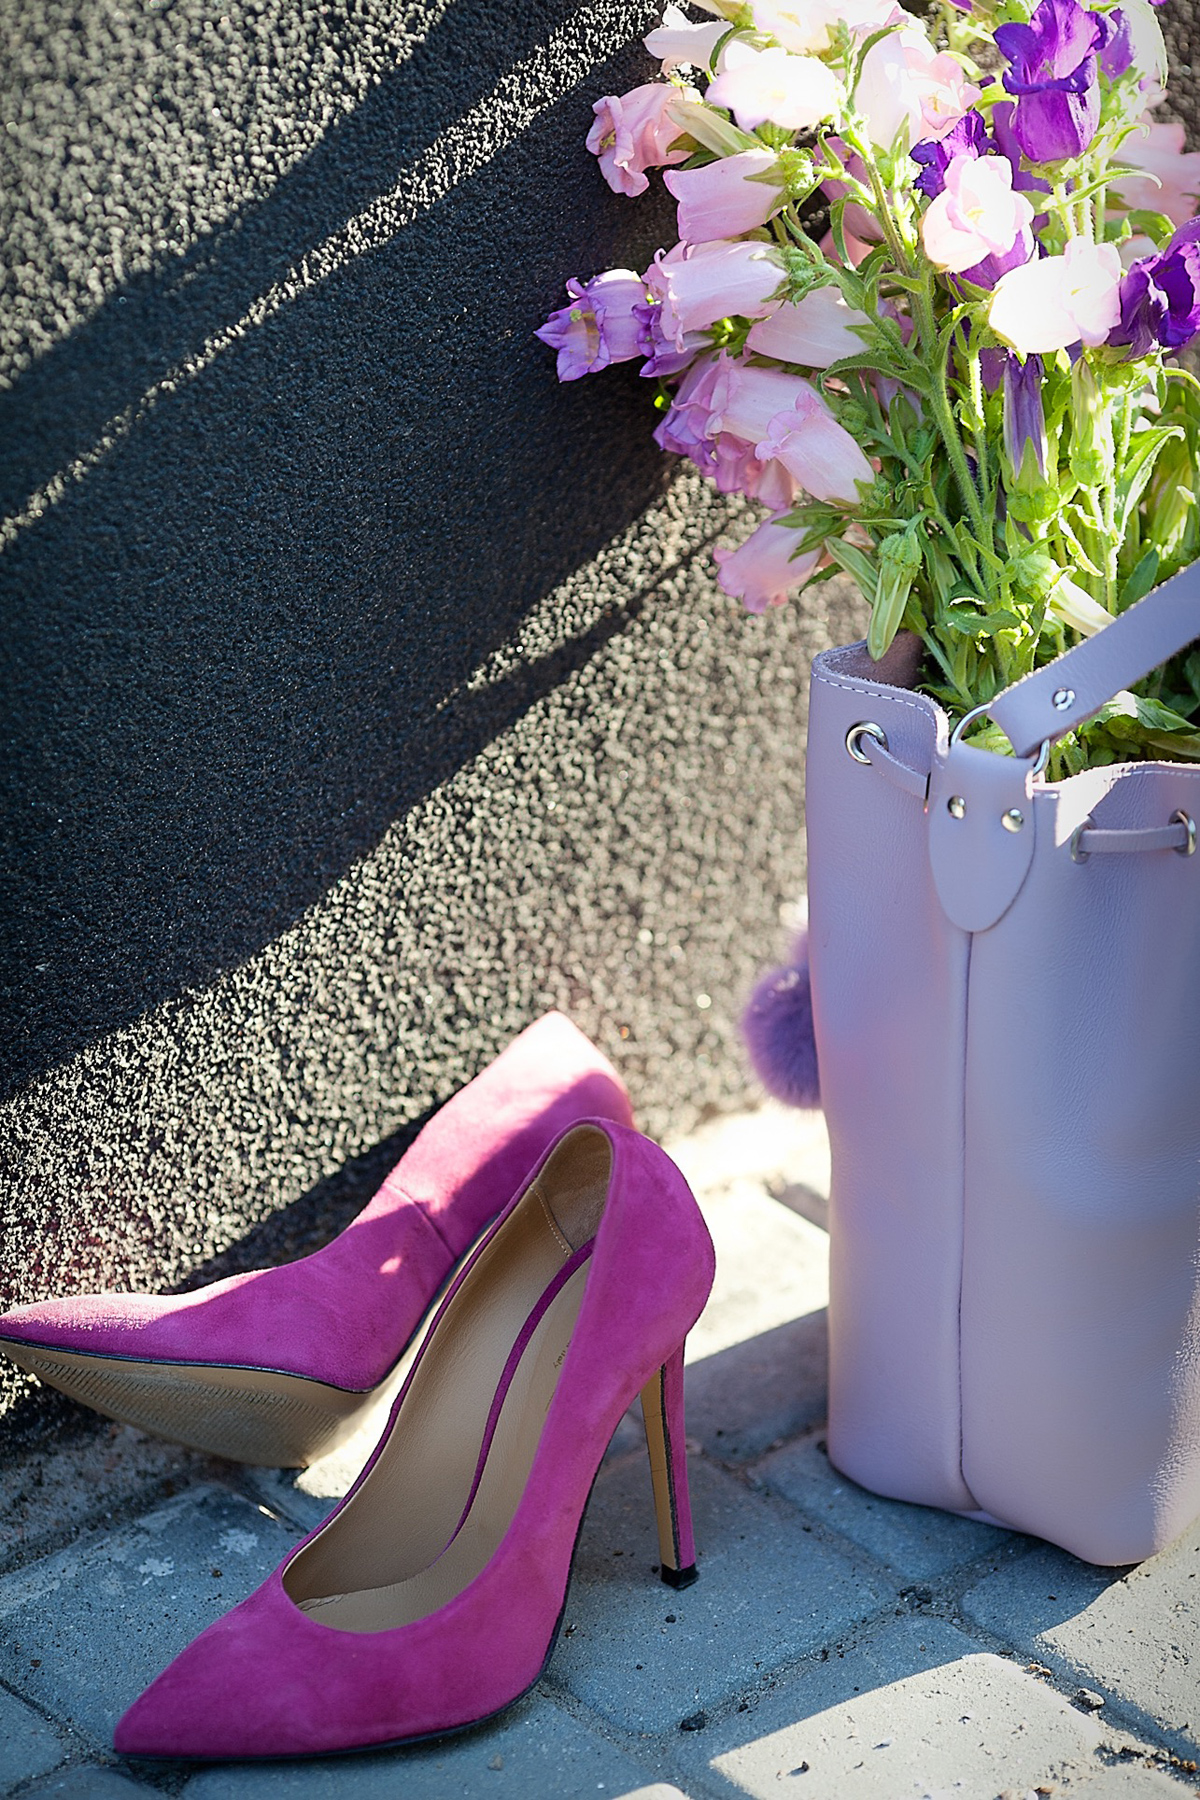 fuchsia-pumps-lilac-grafea-bucket-bag